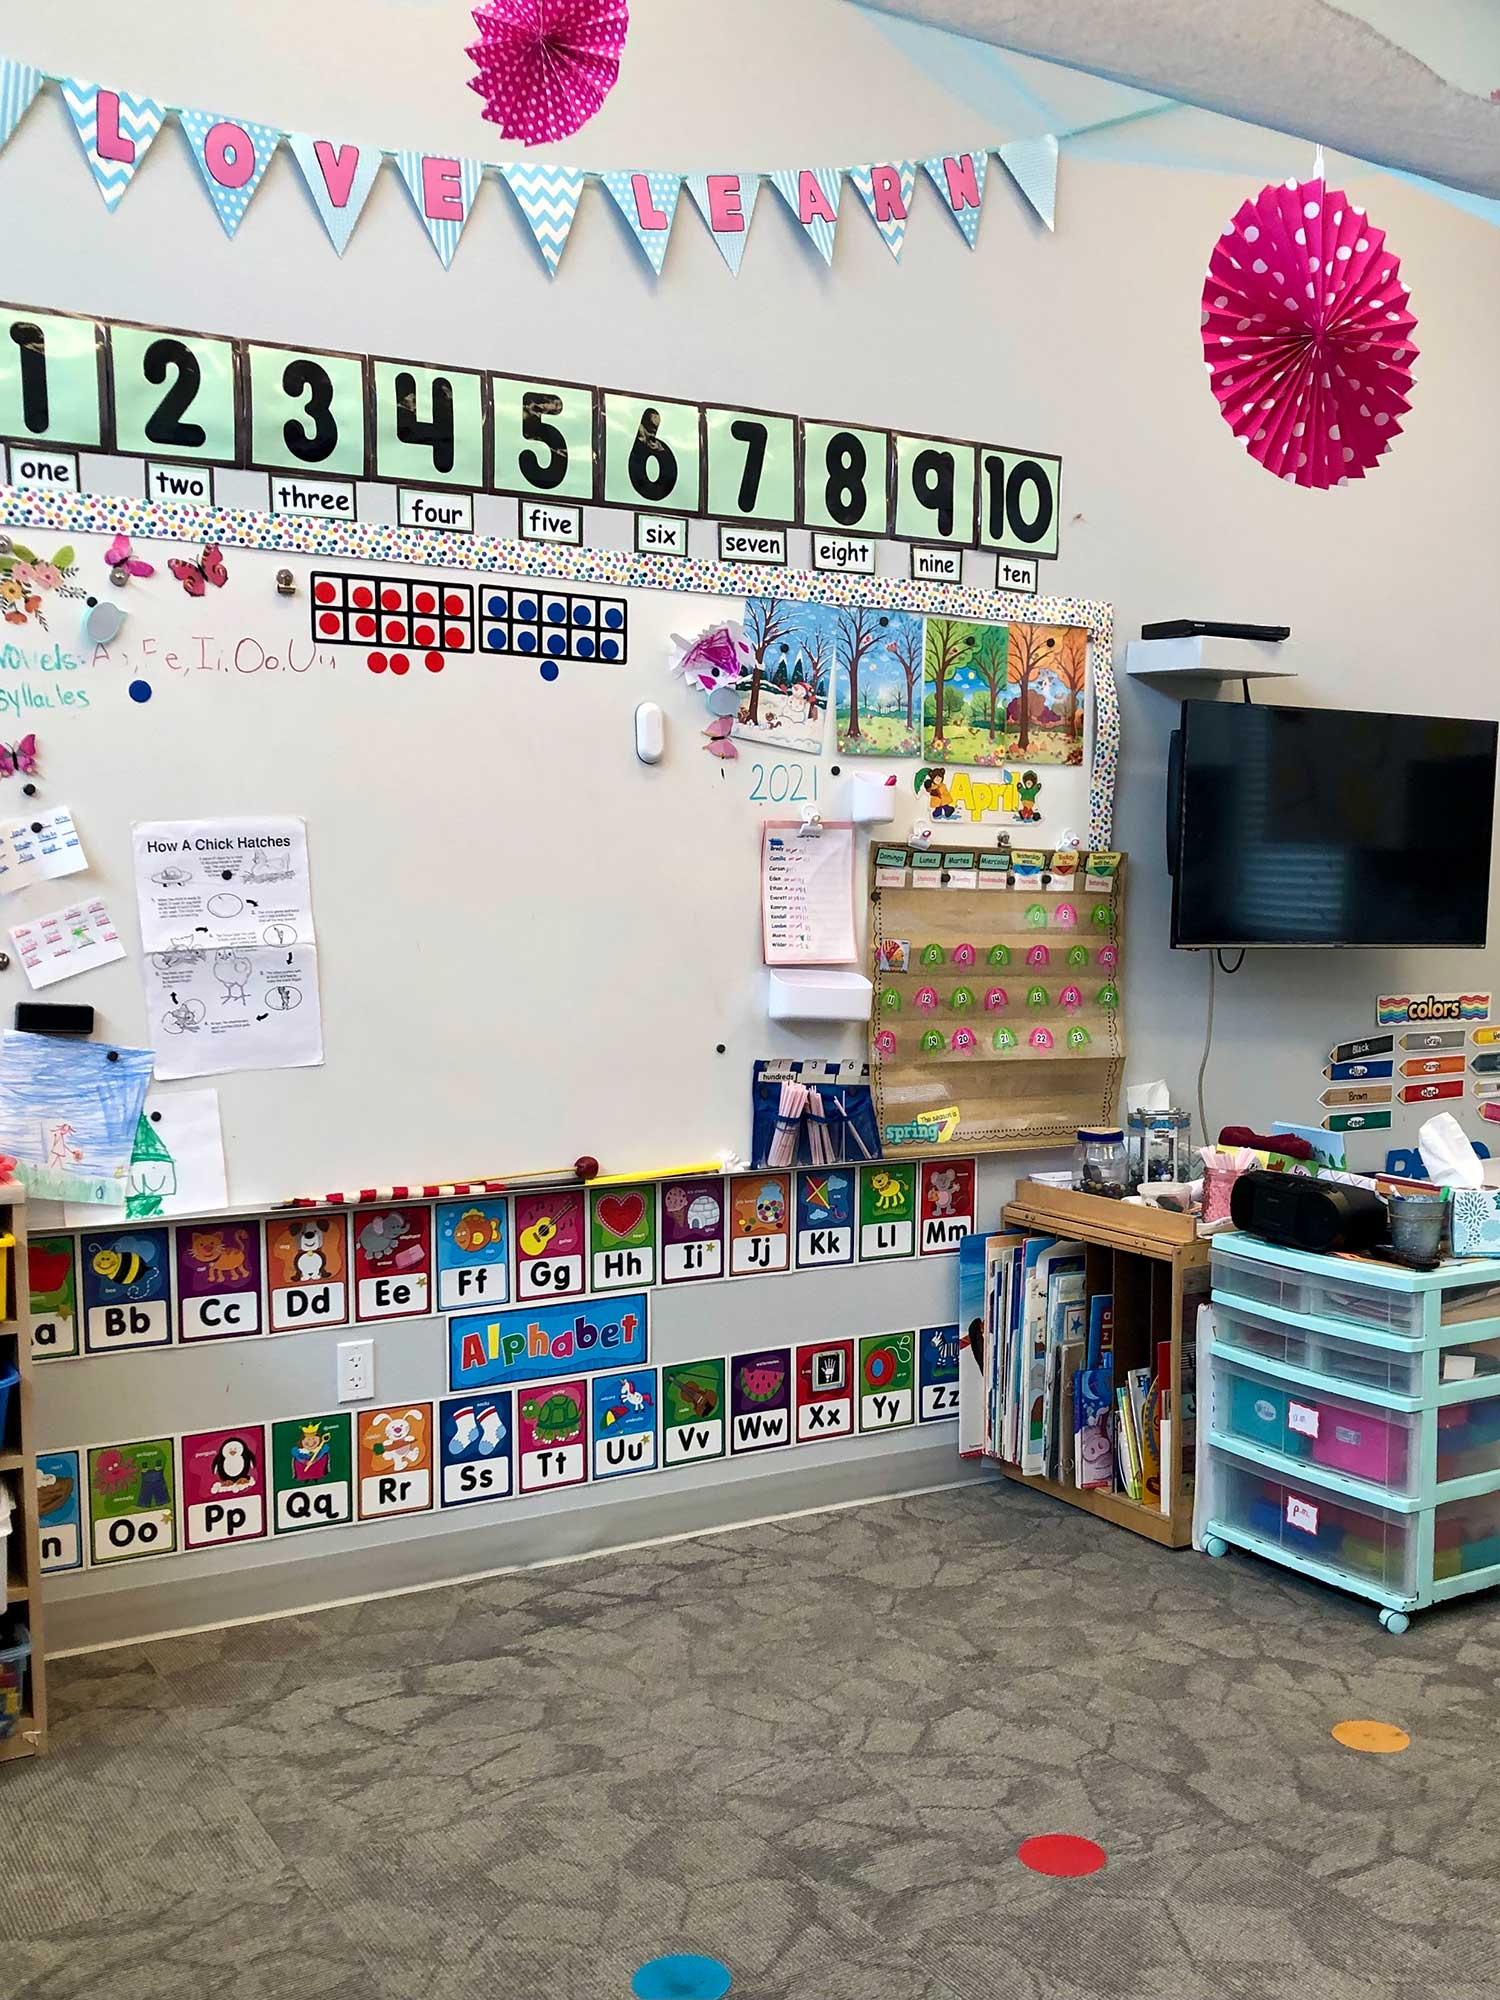 Classroom wall with Numbers and Letters